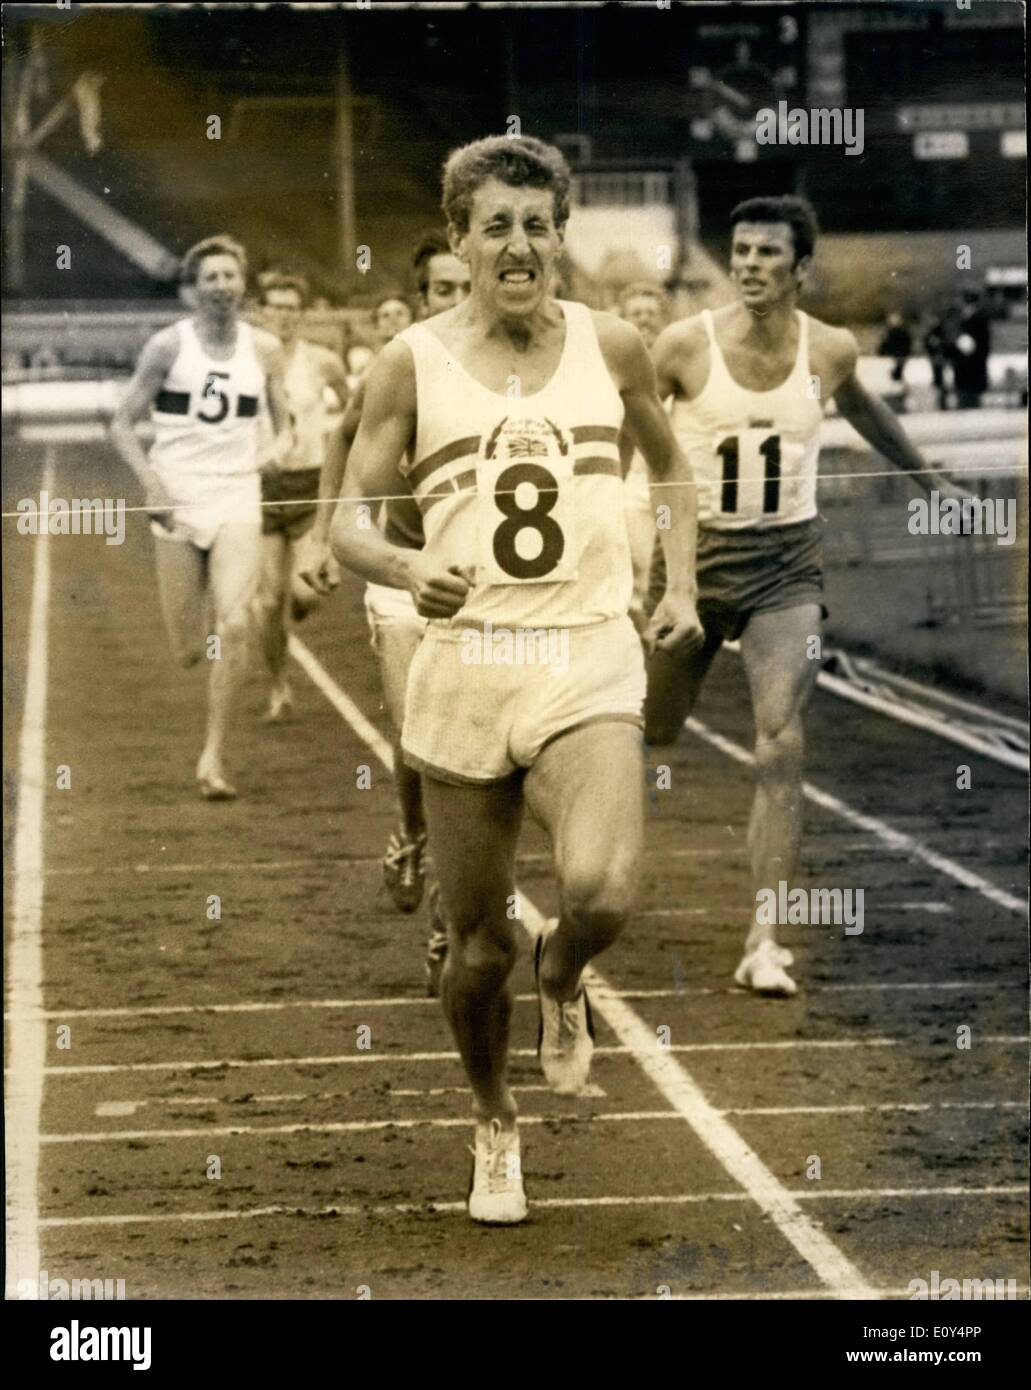 Aug. 08, 1968 - International Athletics At White City John Whetton G.B. Wins ''Emsley Carr'' Mile; Photo Shows John Whetton G.B. seen winning the ''Emsley Carr'' mile at the White City today. - Stock Image